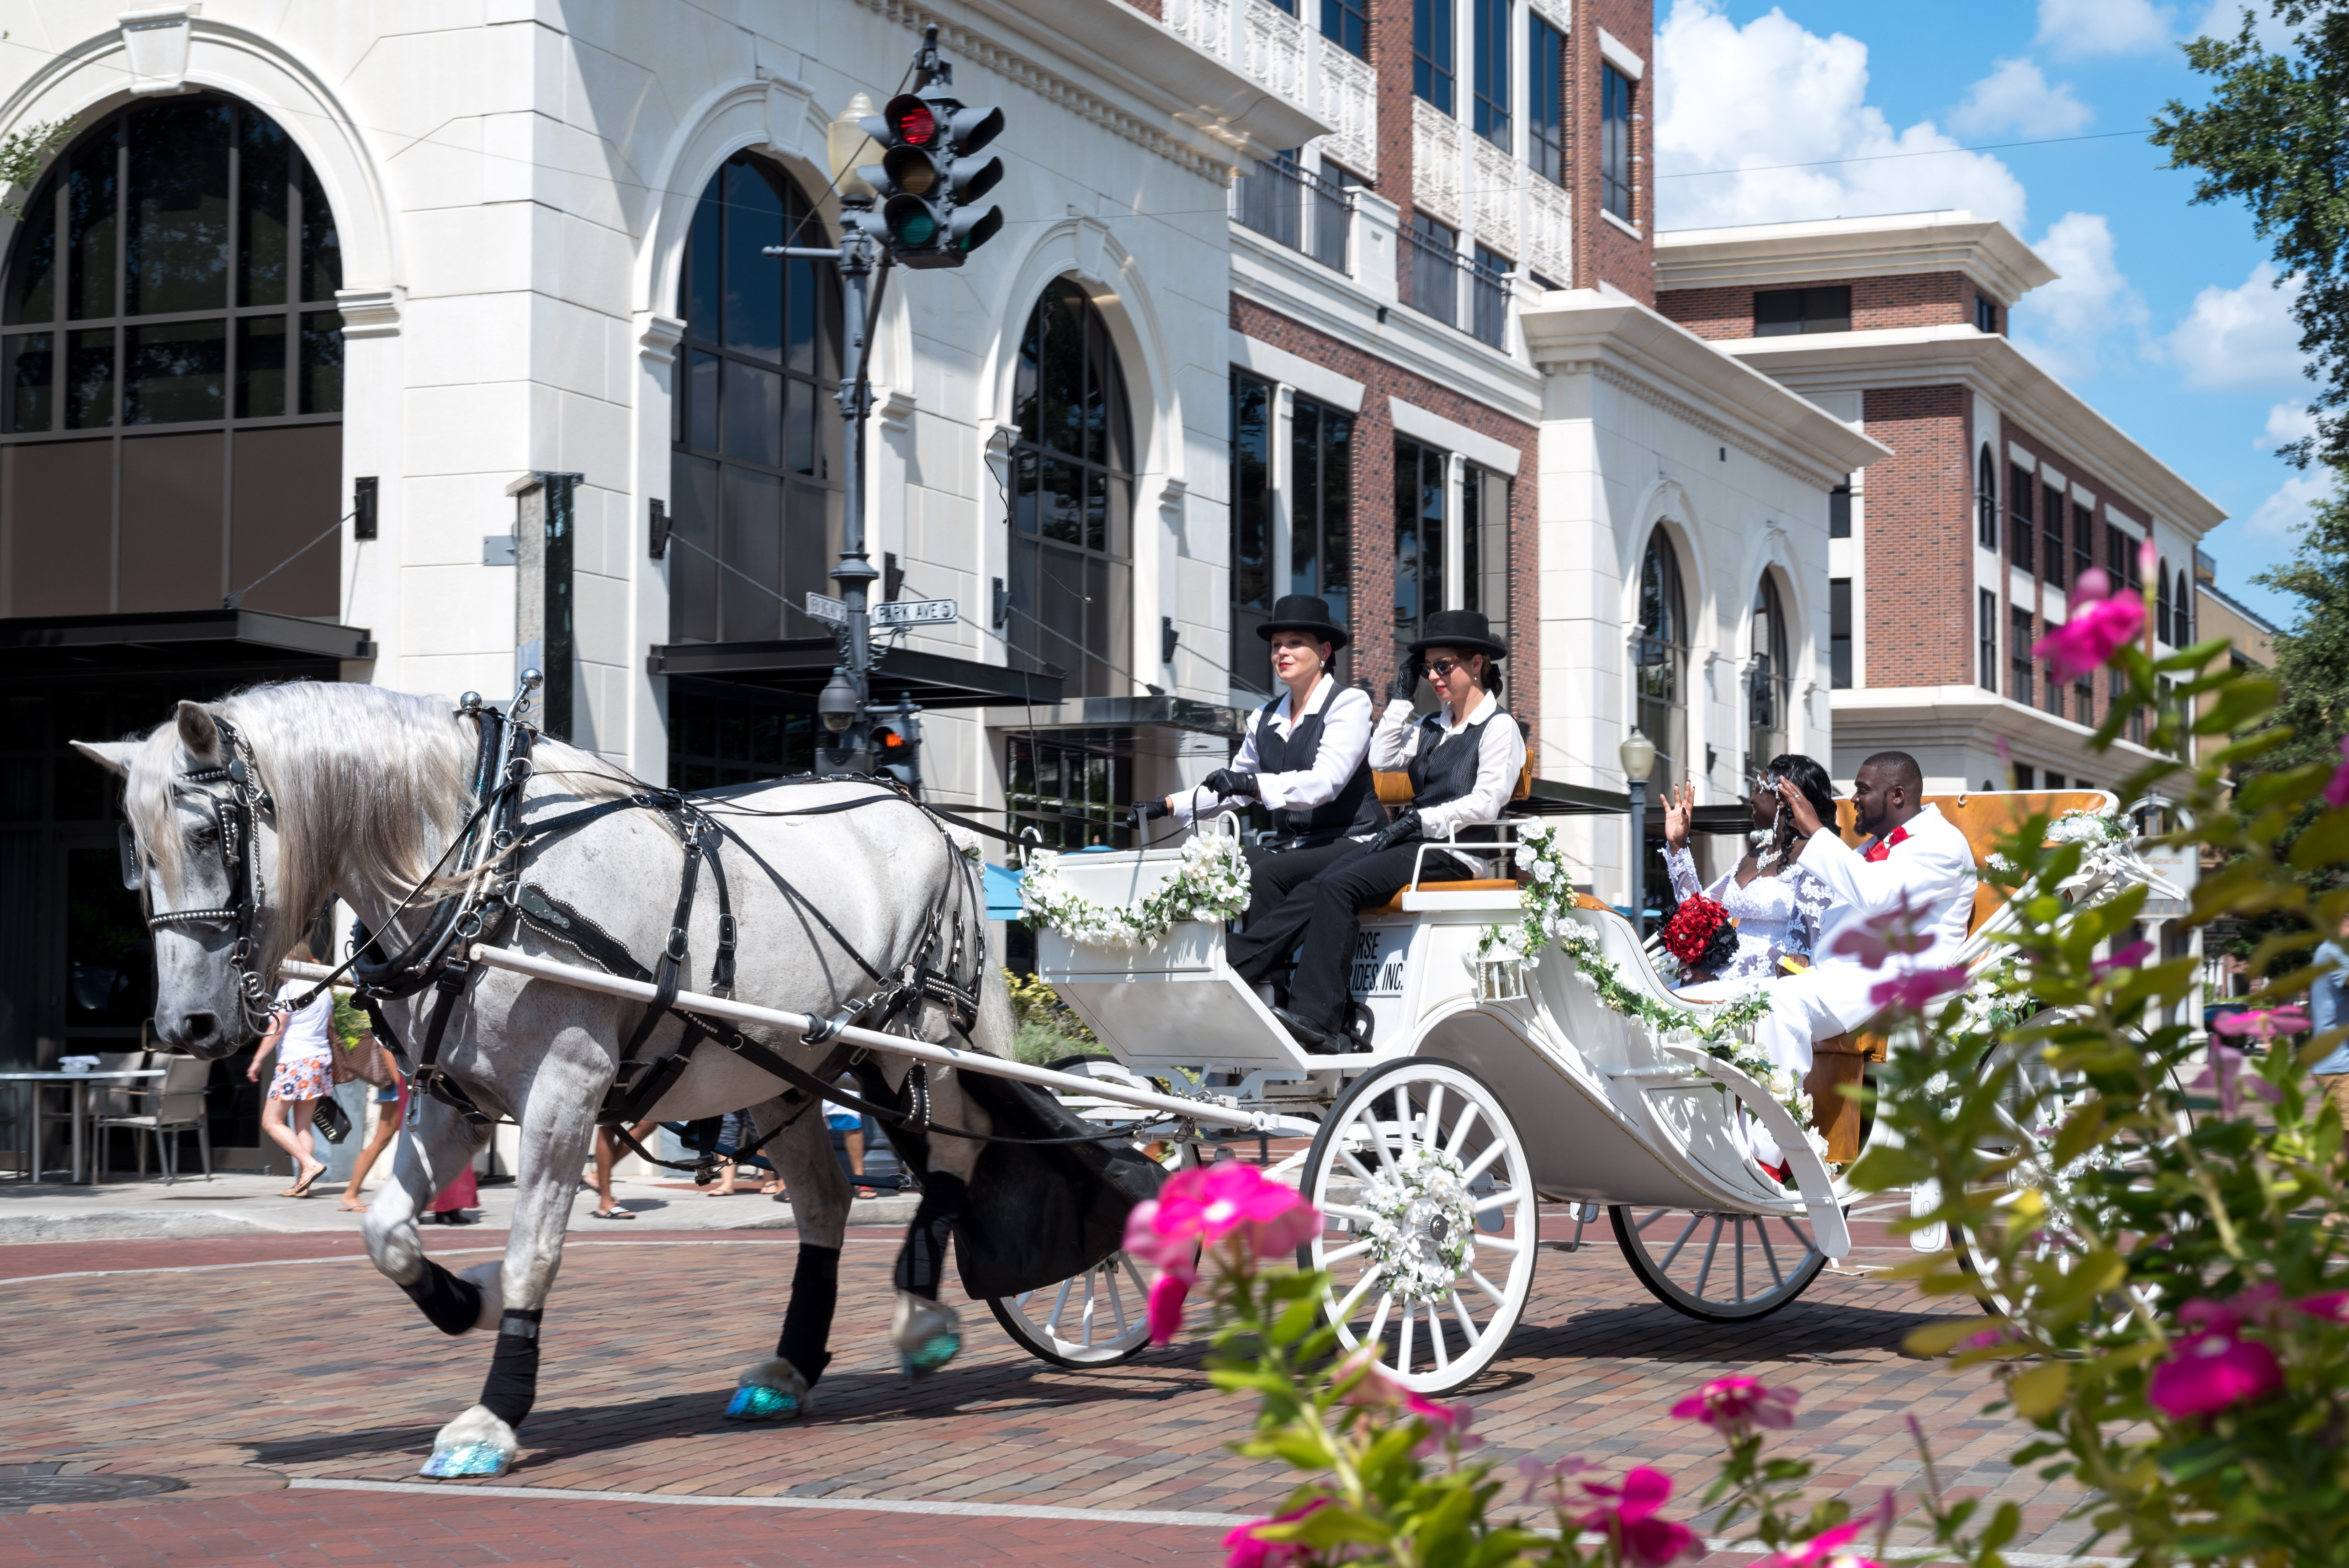 Winter Park Weddings, horse and carriage, downtown winter park weddings, downtown horse and carriage. Park Ave Winter Park